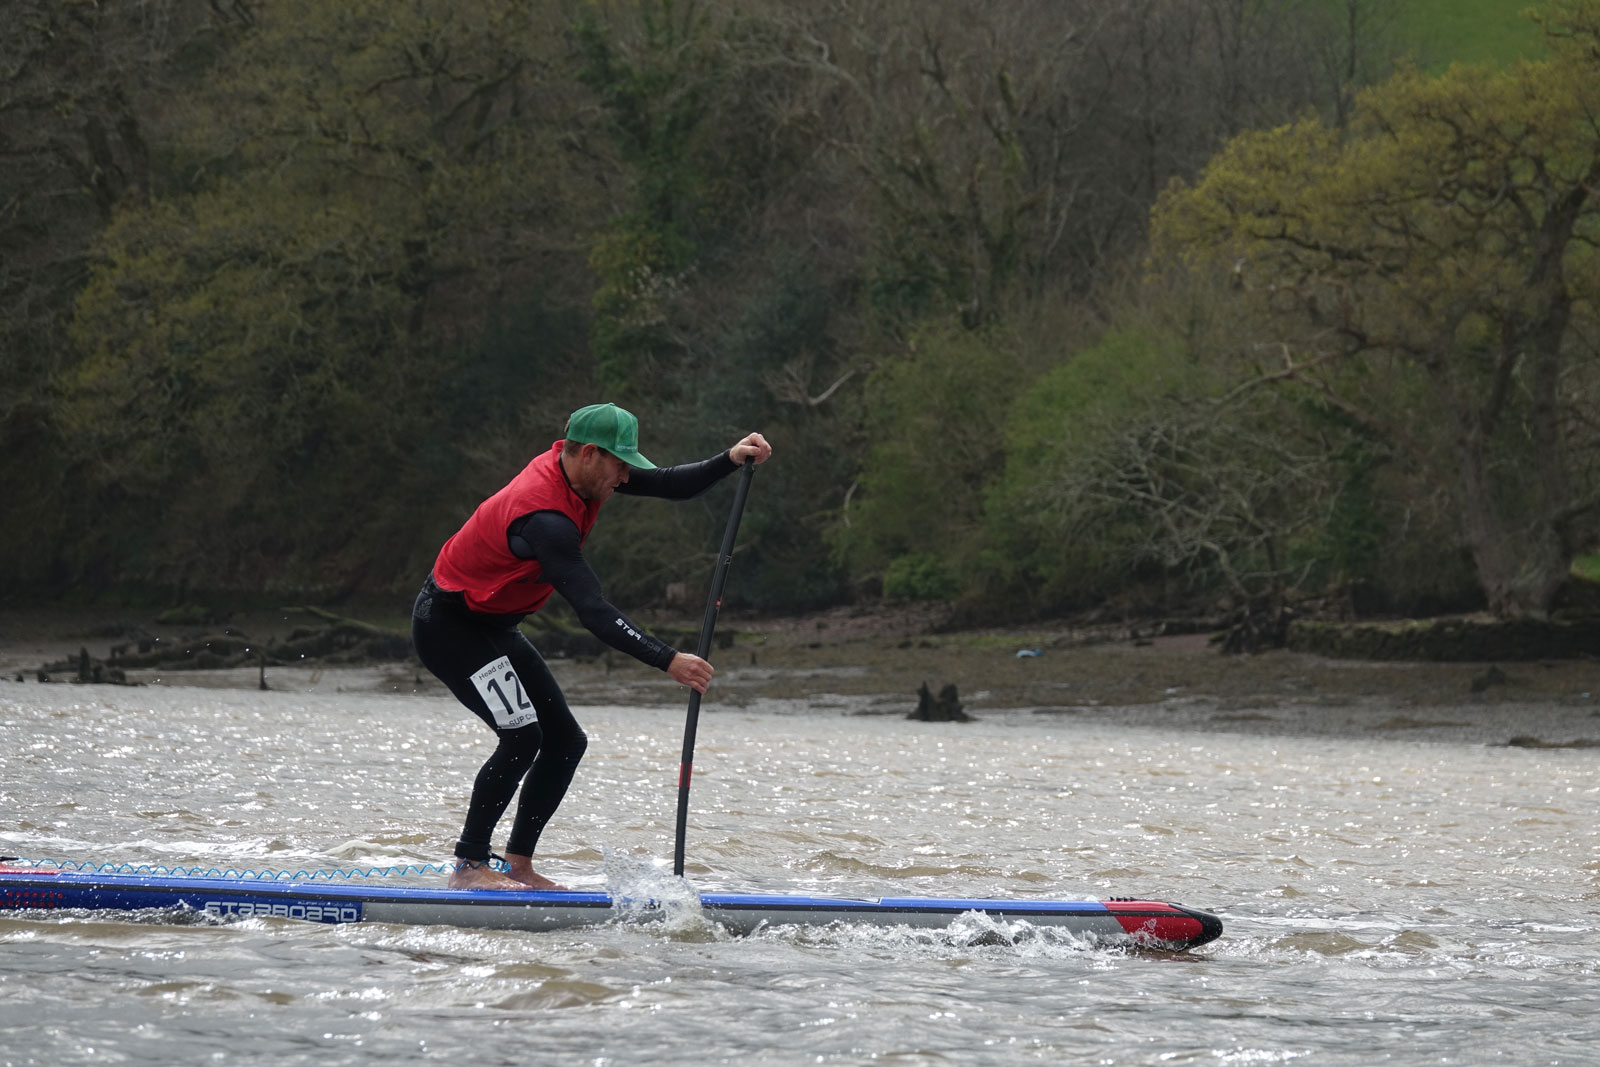 starboard-sup-Head-of-the-Dart-SUP-Challenge-2018-5